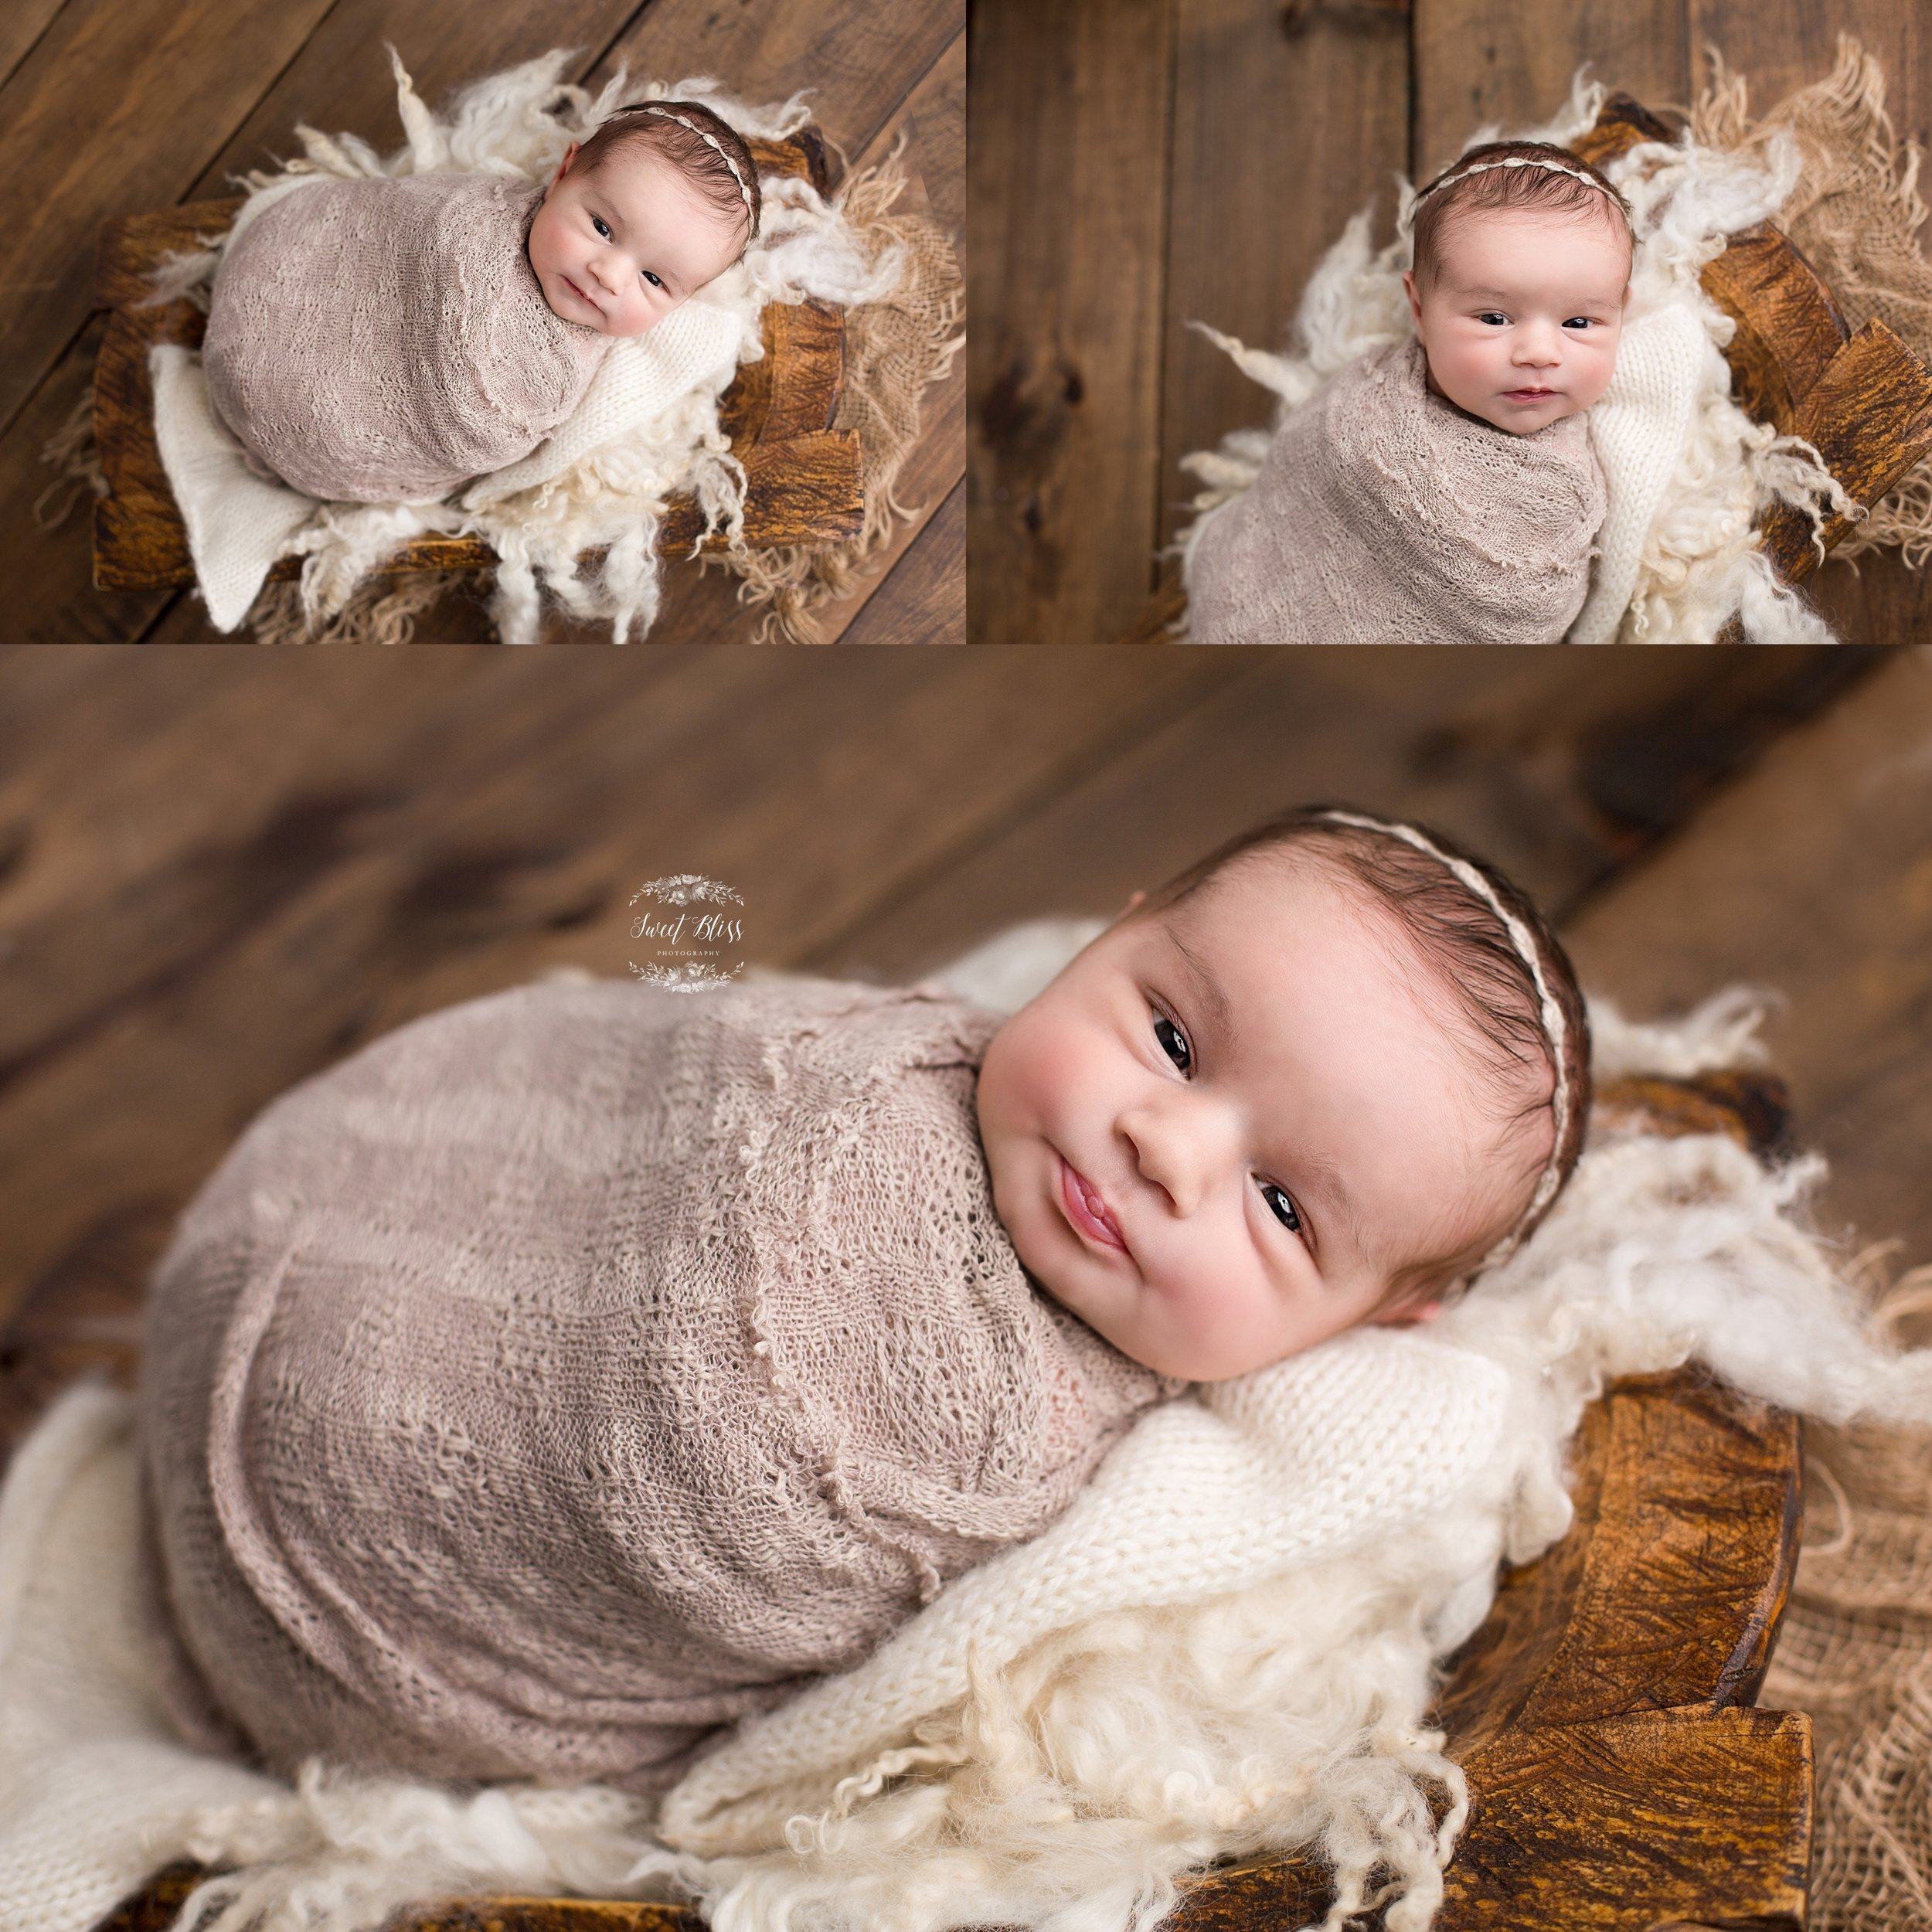 Marylandnewbornphotographer_Babygirlwoodbowl2.jpg